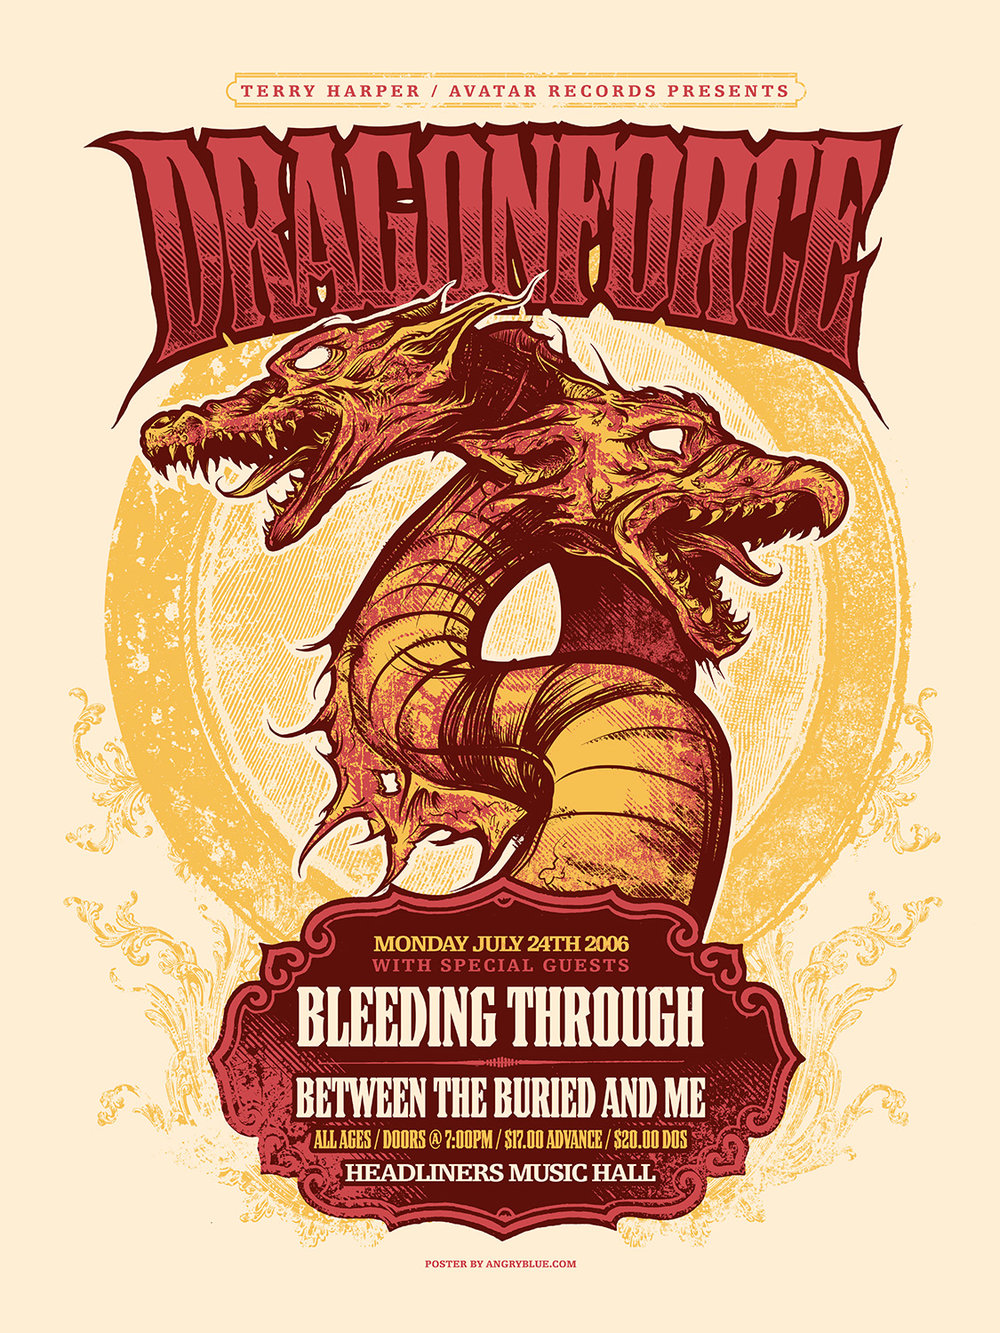 This is the poster where I learned that maybe Dragonforce isn't really that into dragons.